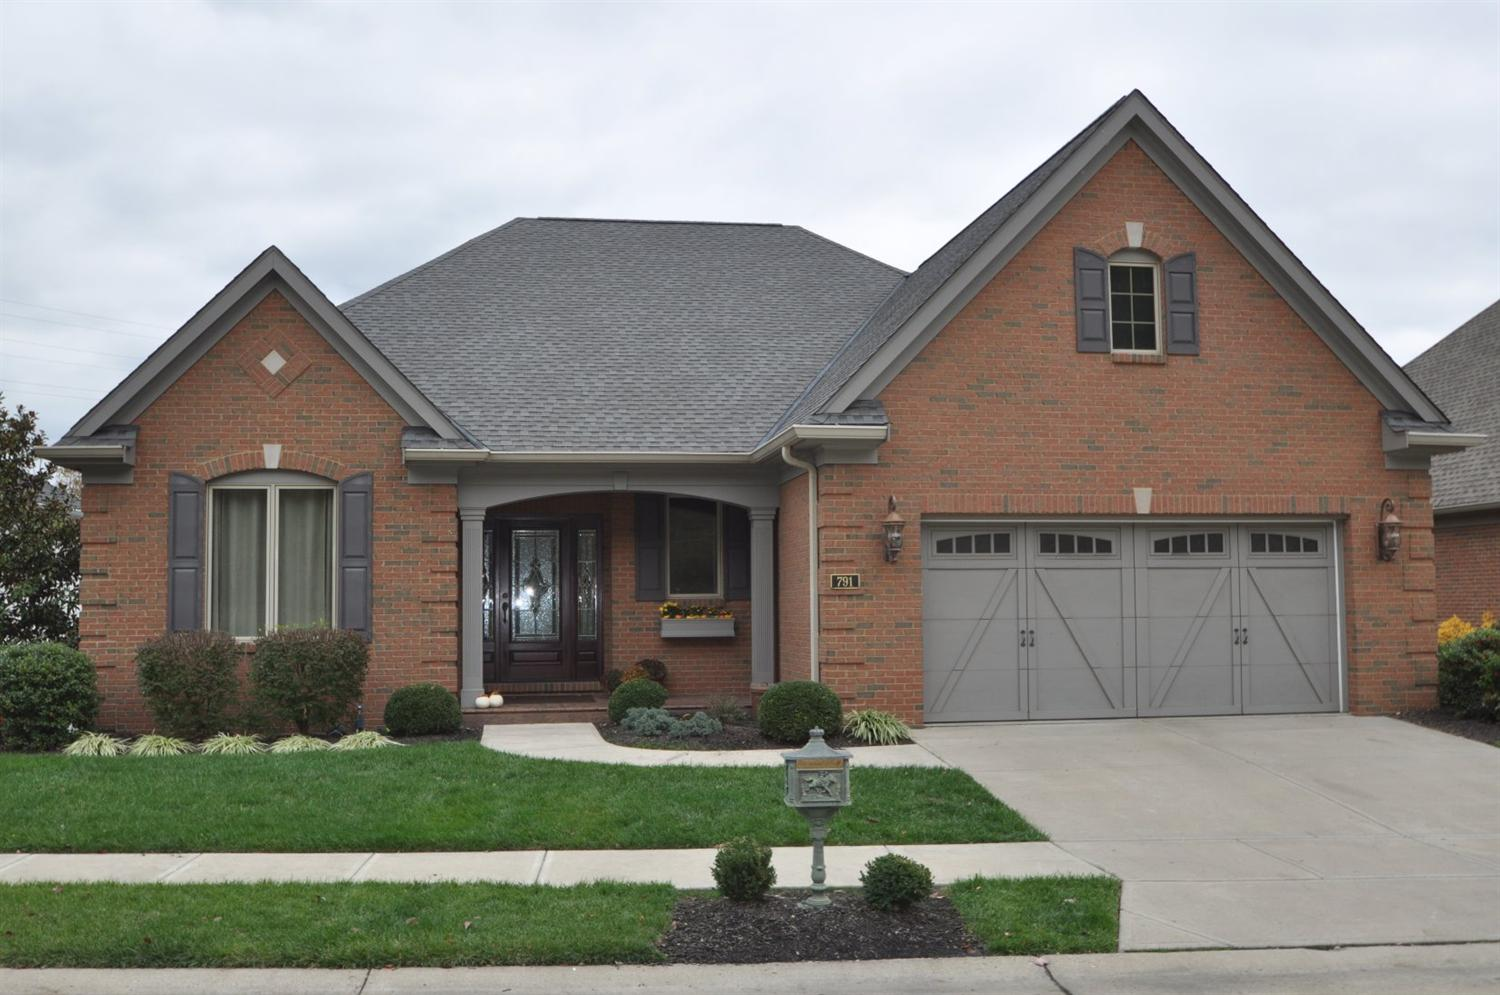 villa hills real estate houses for sale in kenton county  ky homes for sale near 41017 zillow houses for sale 41017